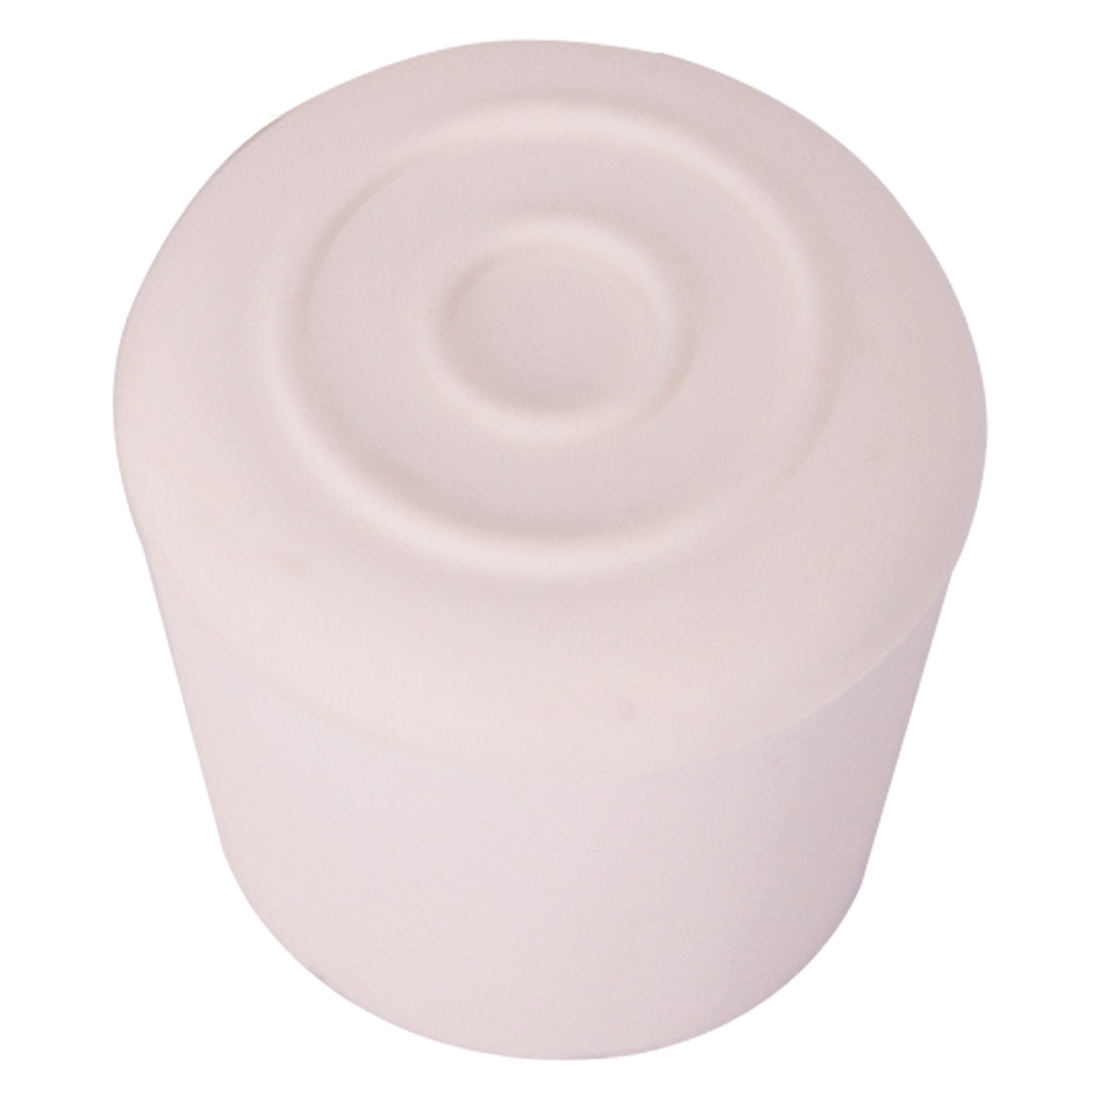 Picture of ProSource FE-50646-B Furniture Leg Tip, Round, Rubber, White, 1-1/8 in Dia